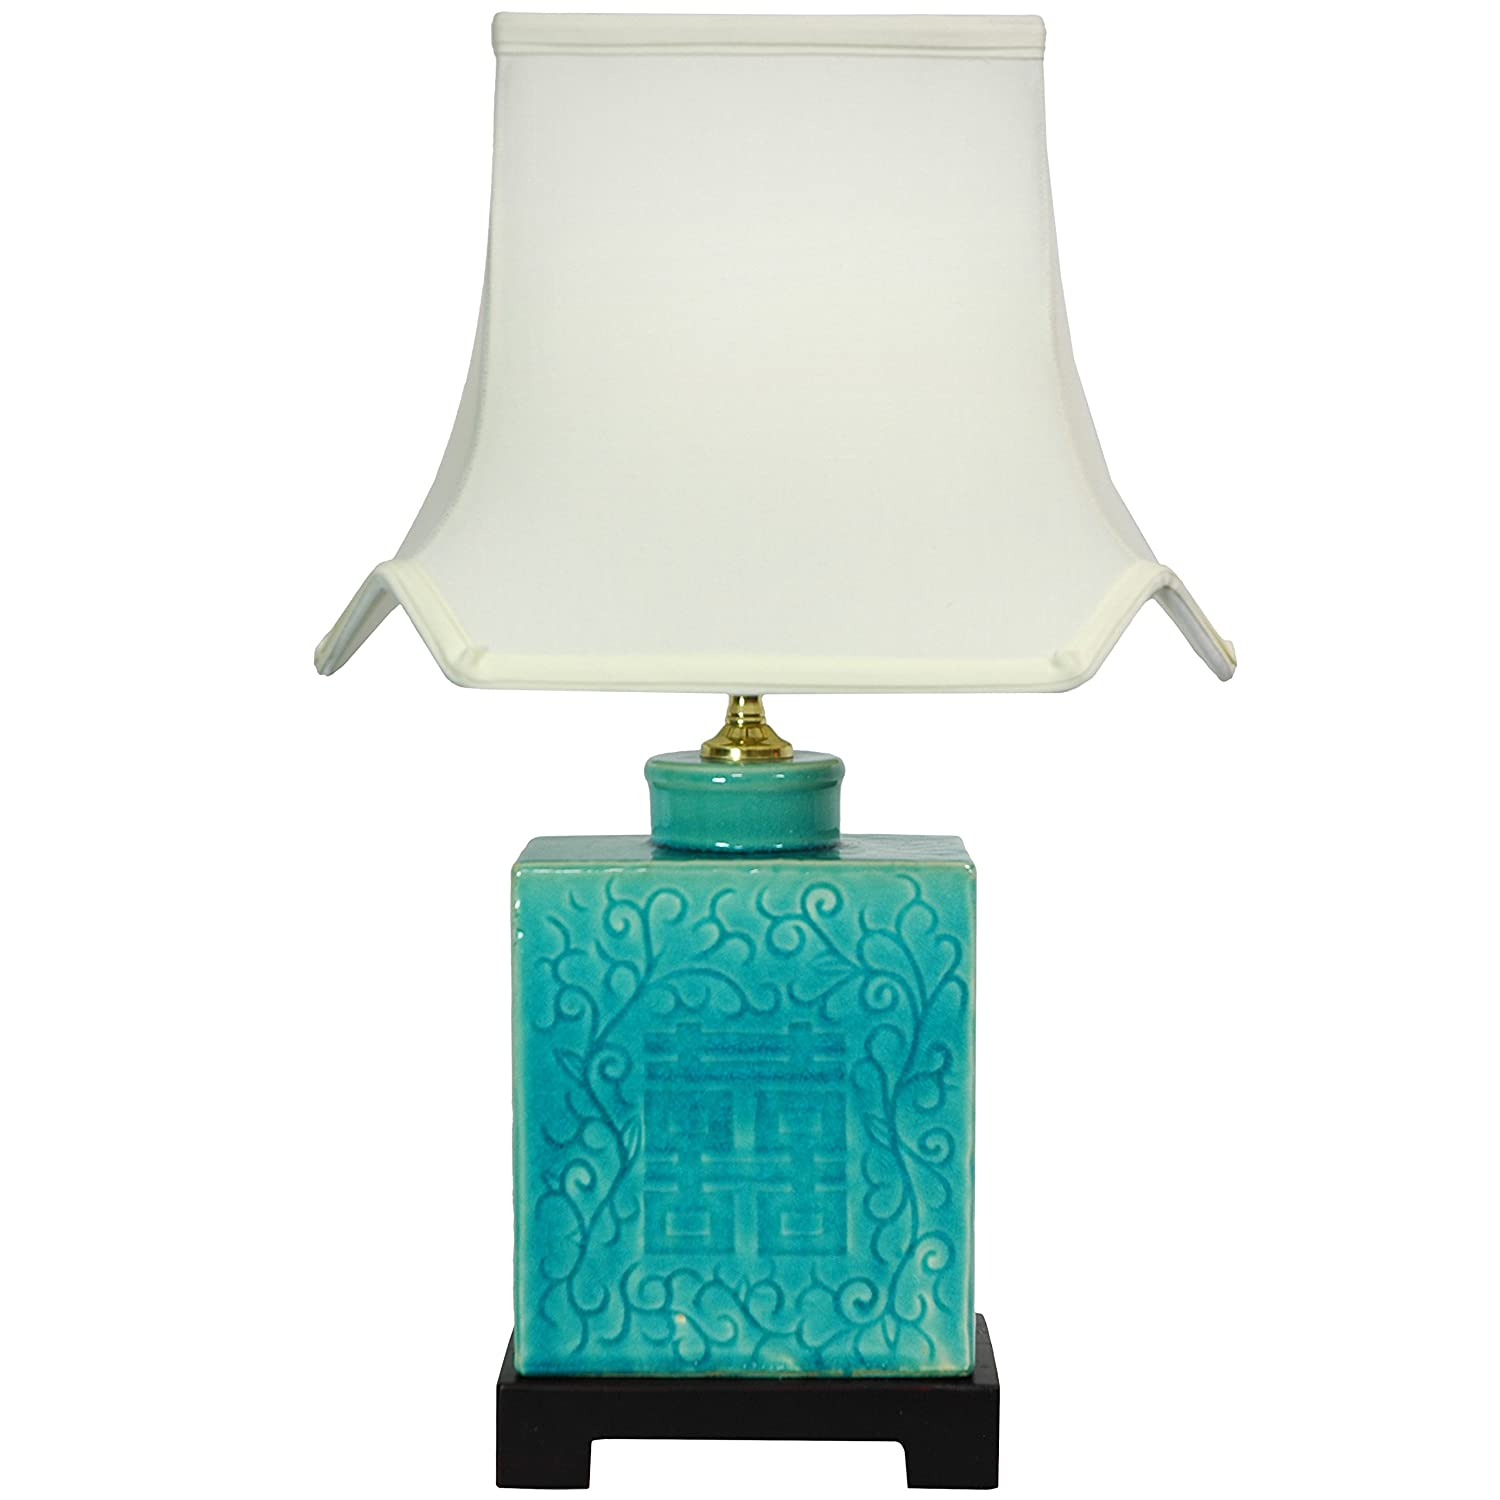 Amazon oriental furniture 20 turquoise porcelain lamp home amazon oriental furniture 20 turquoise porcelain lamp home kitchen geotapseo Gallery